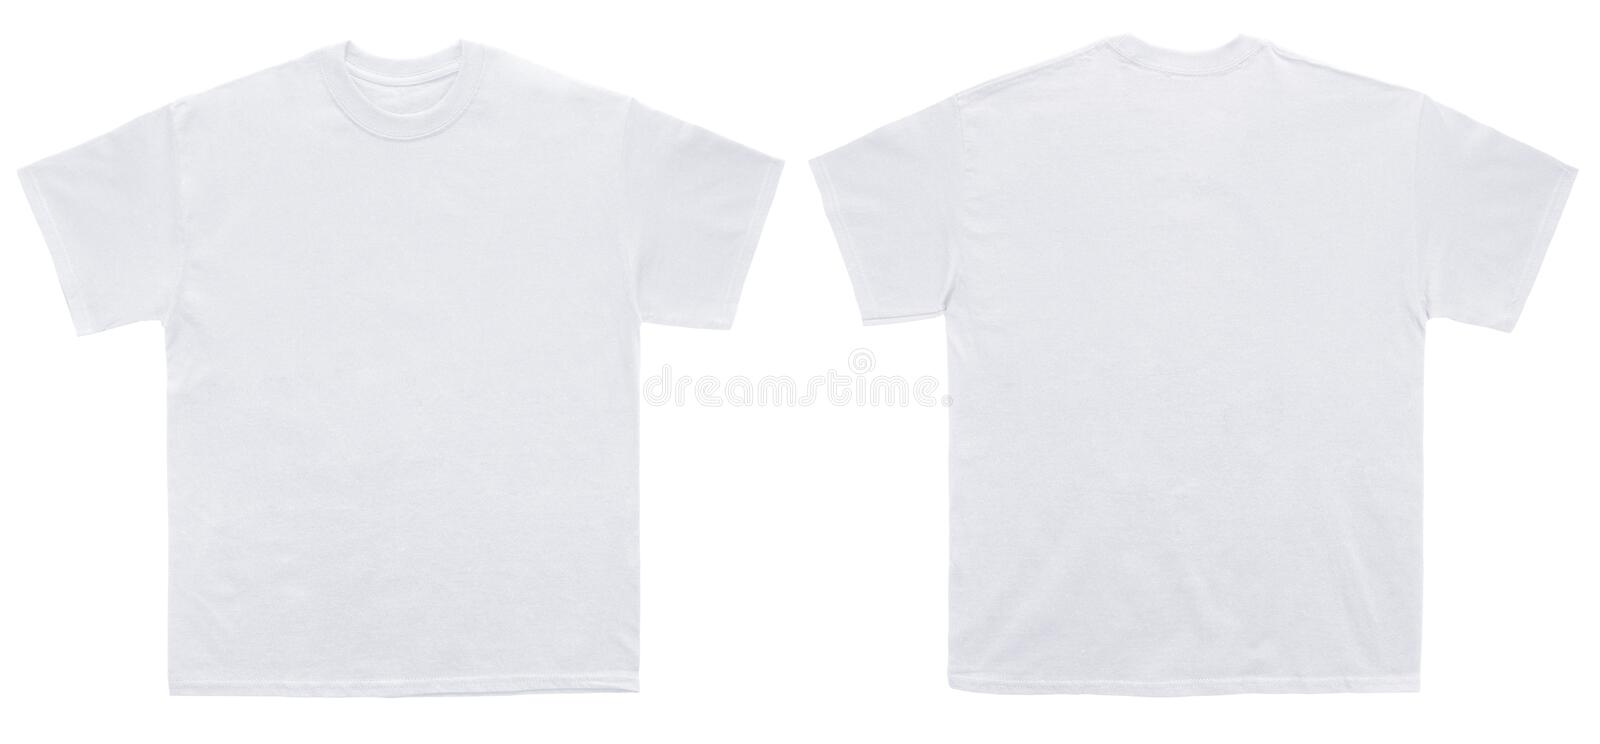 Blank T Shirt color white template front and back view royalty free stock photography